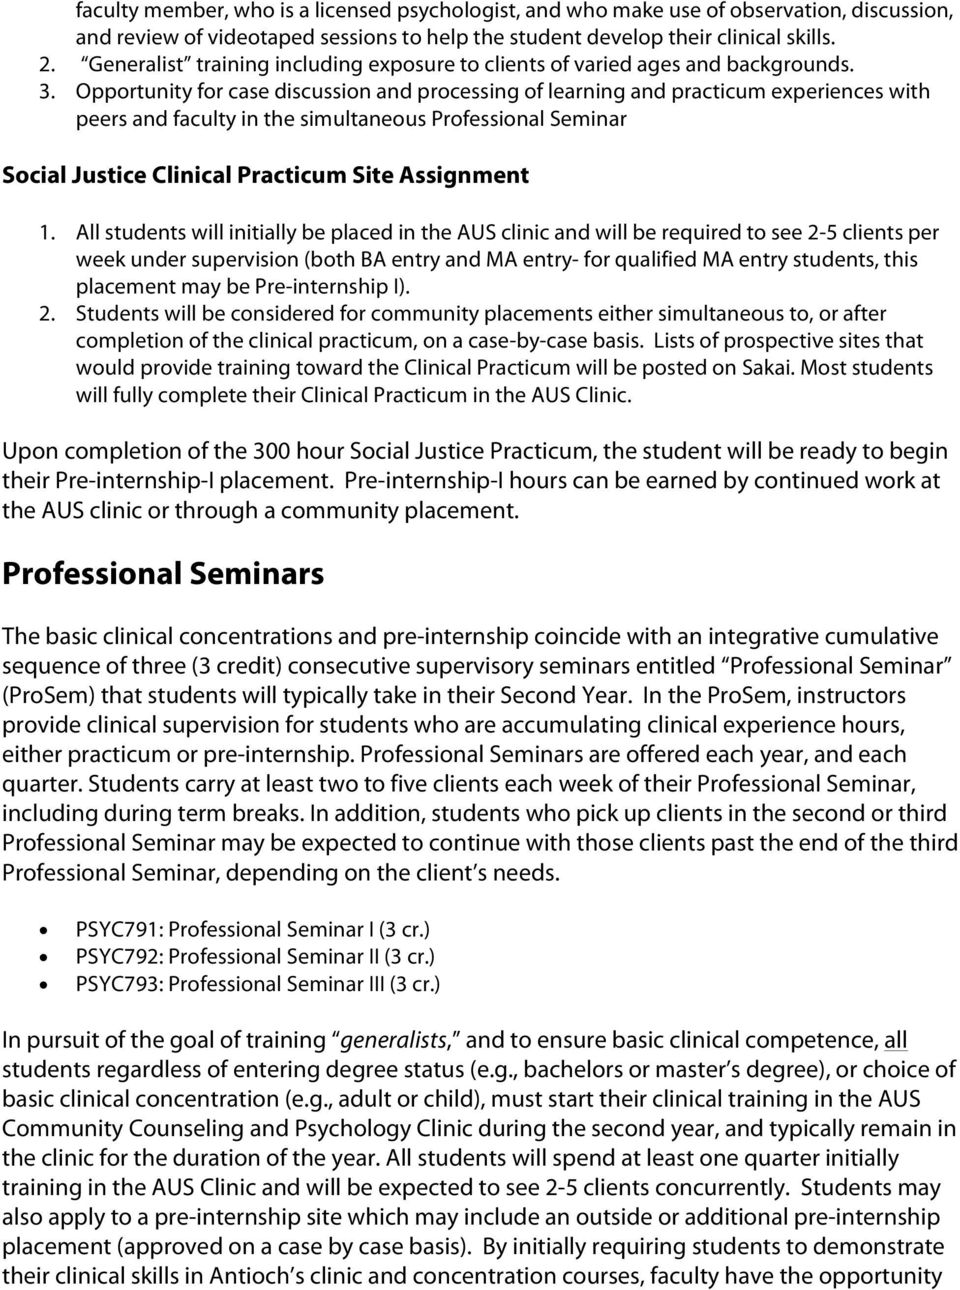 Opportunity for case discussion and processing of learning and practicum experiences with peers and faculty in the simultaneous Professional Seminar Social Justice Clinical Practicum Site Assignment